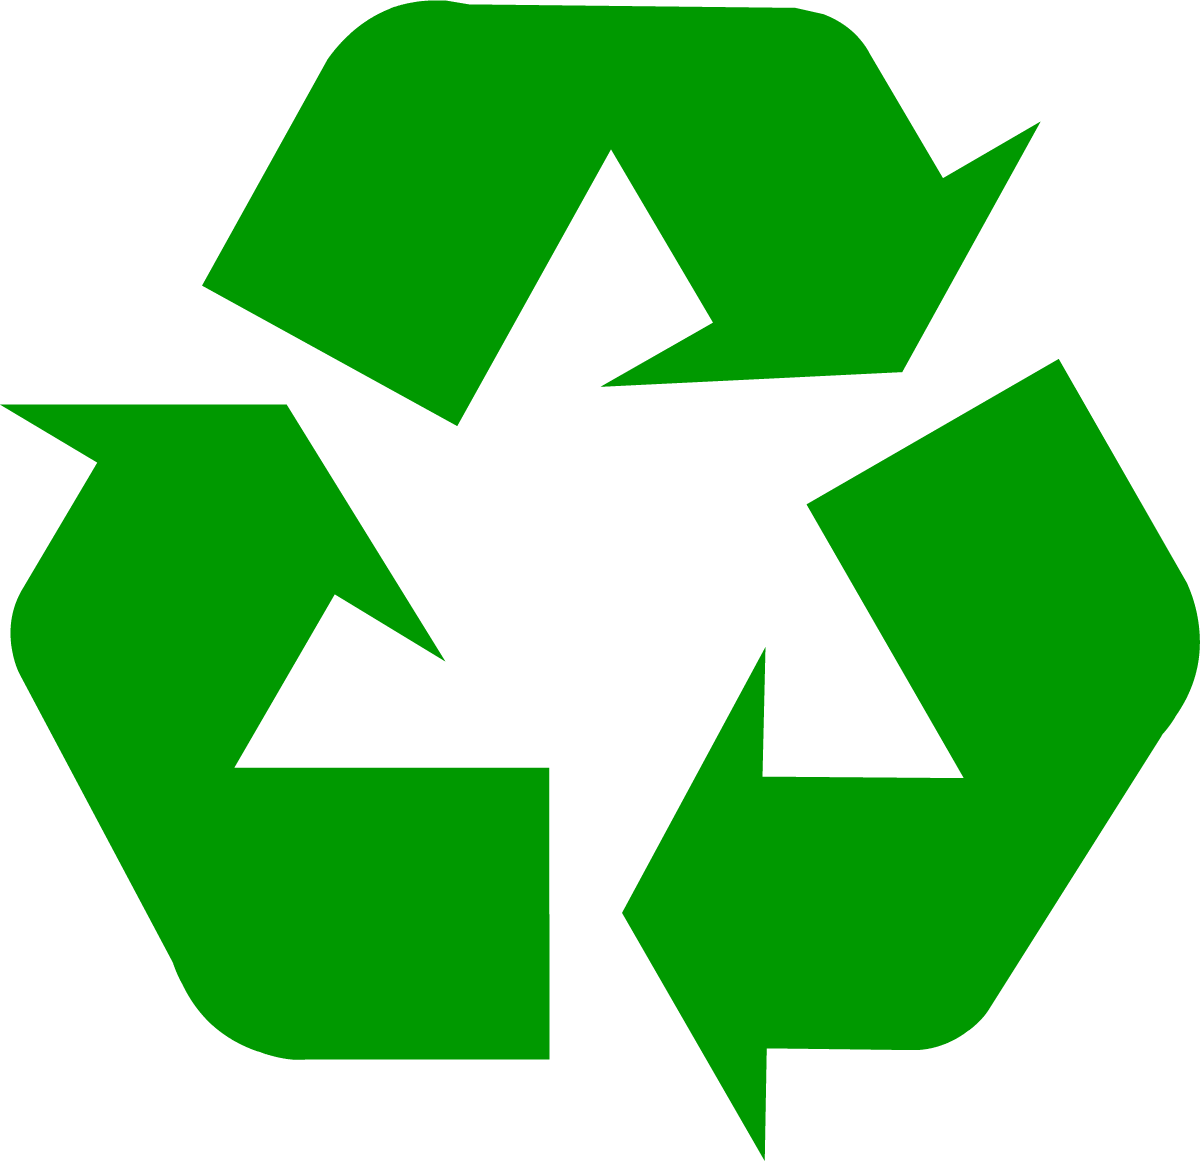 recycling-symbol-icon-solid-dark-green